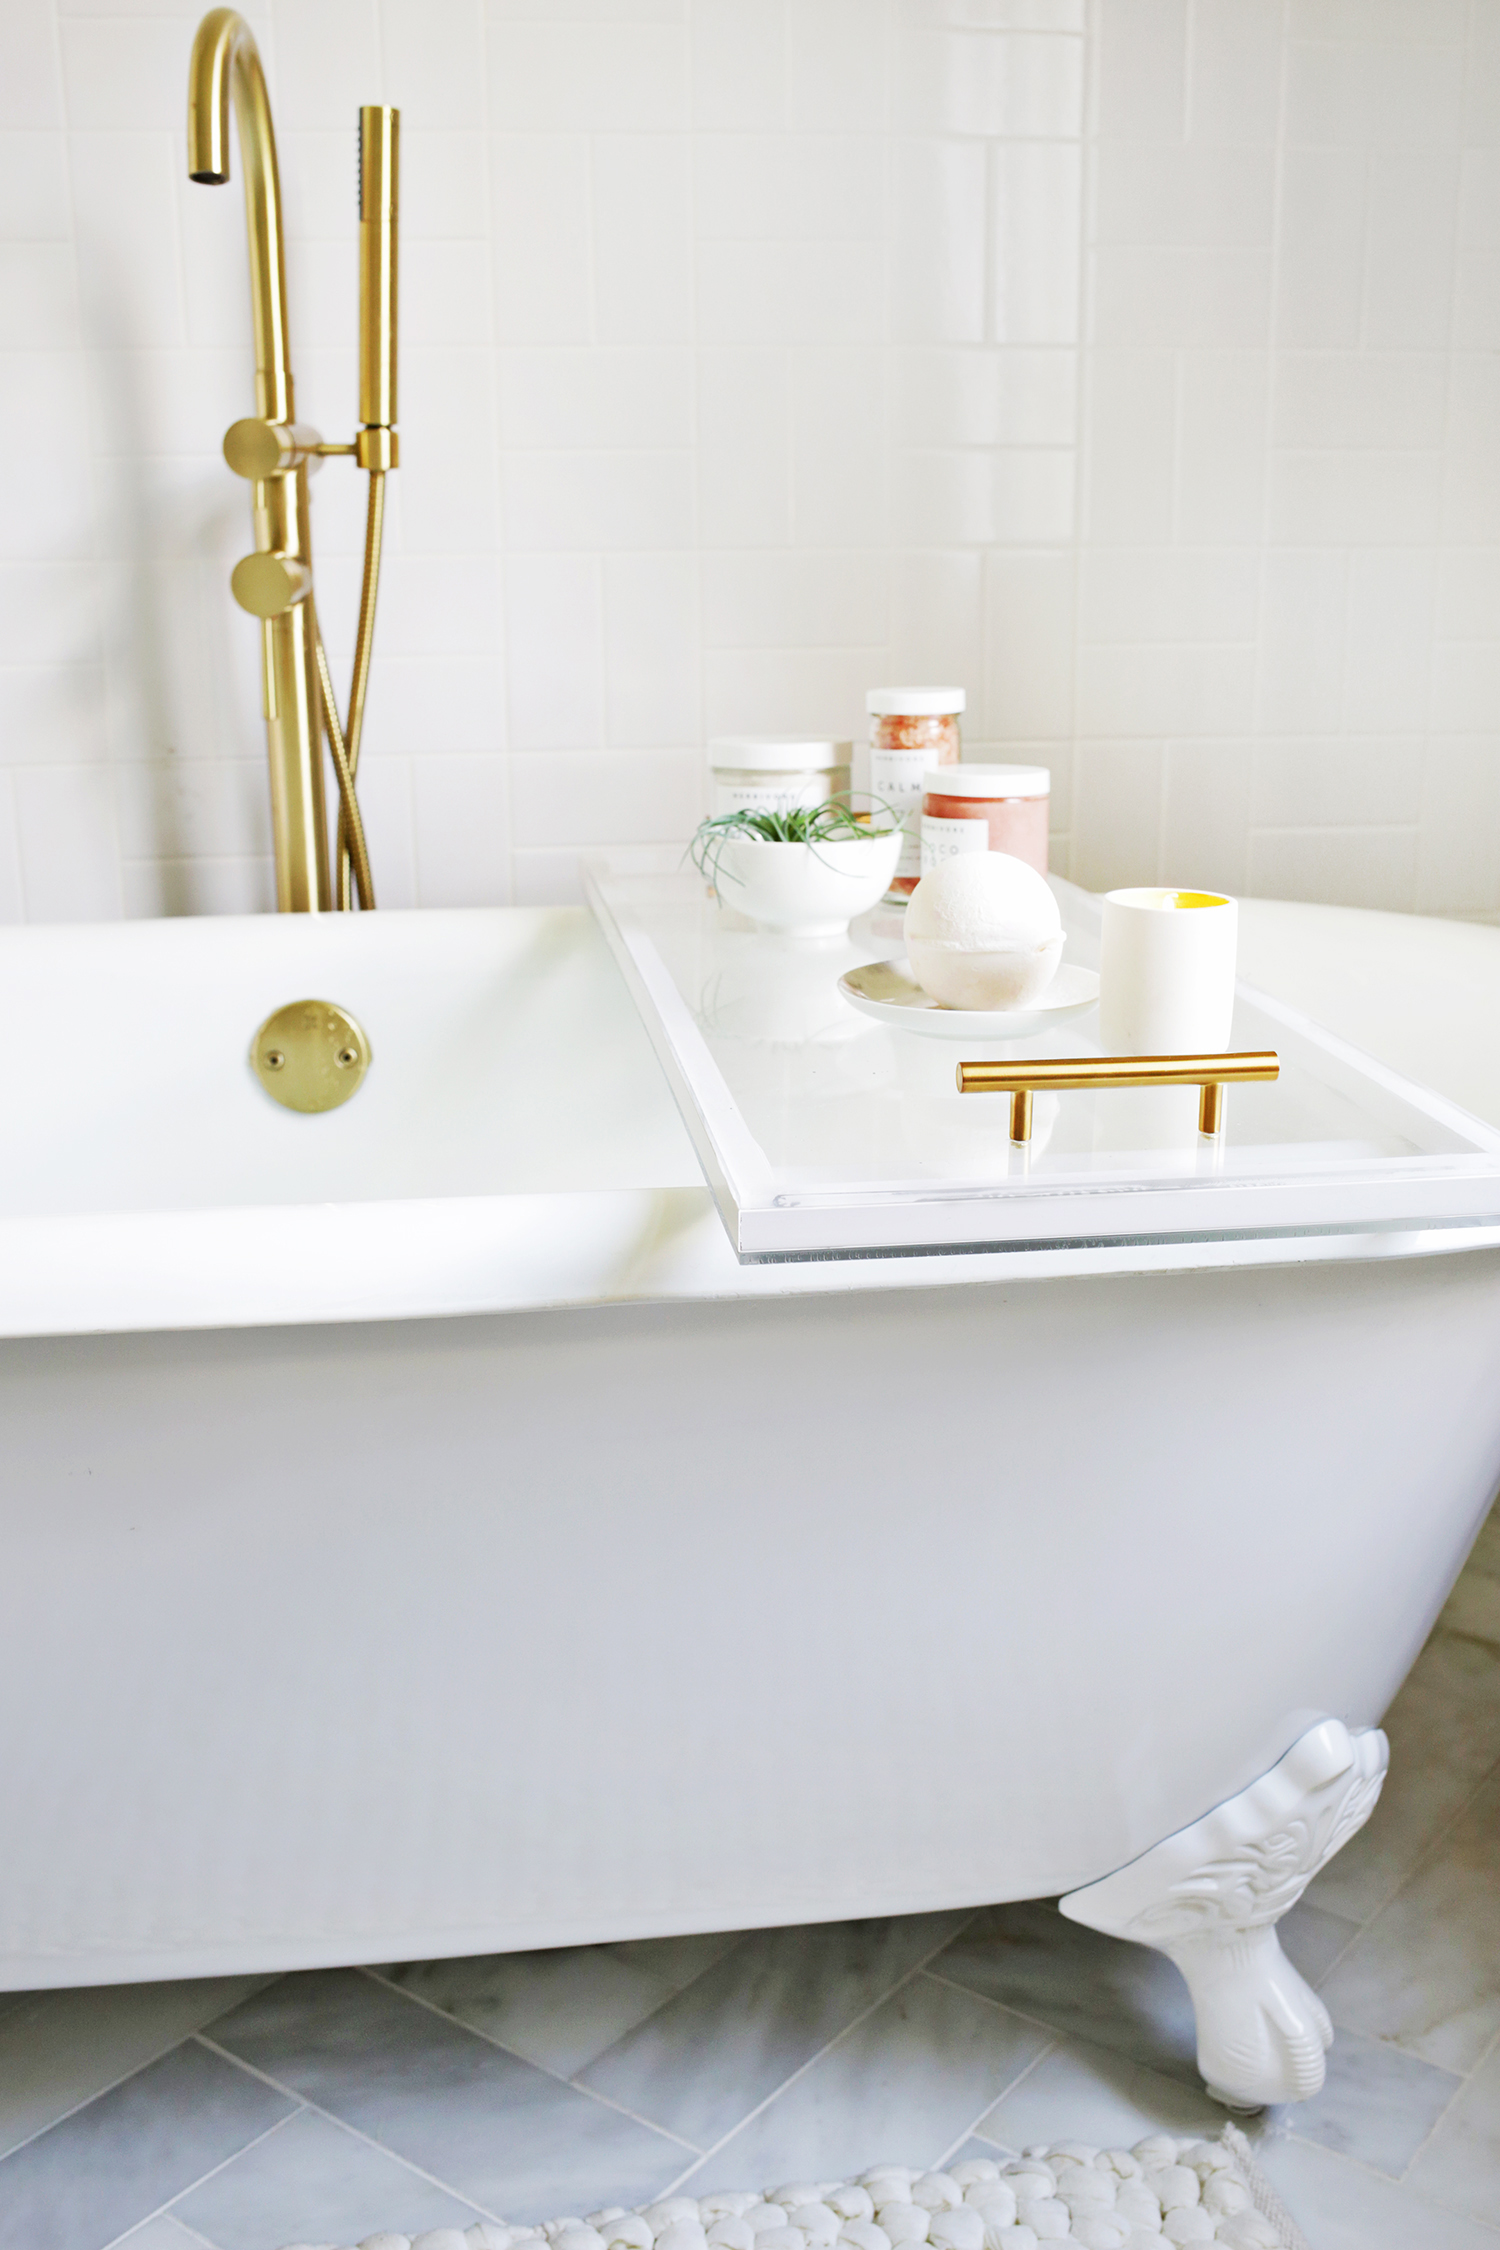 Lucite Bathtub Caddy DIY! - A Beautiful Mess